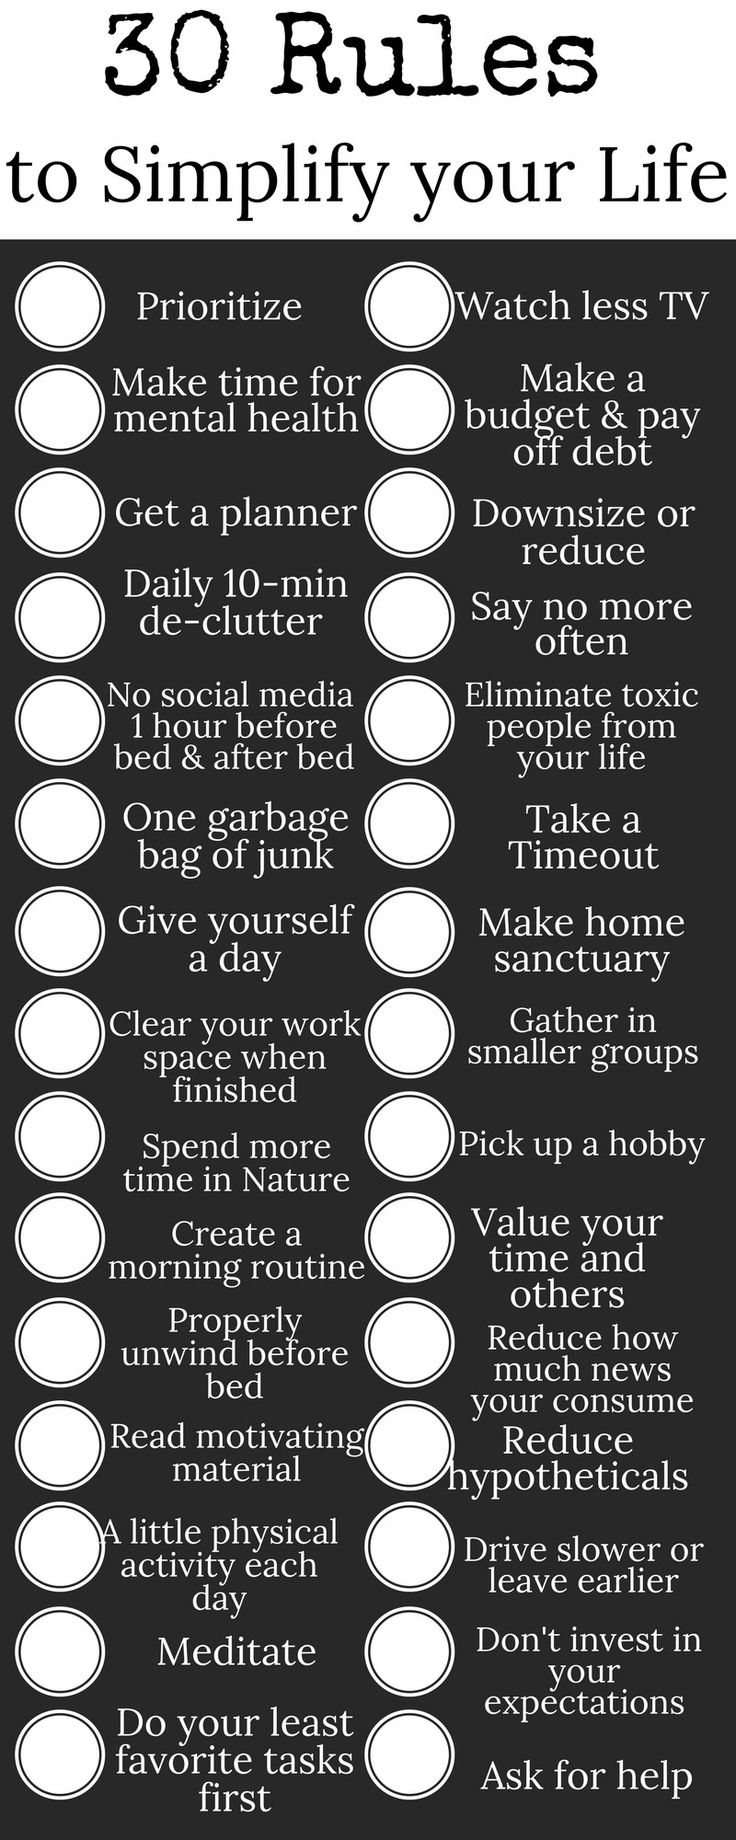 30 tips and rules to help you simplify your life. Simplify your routine, your relationships, and your lifestyle to reduce stress and amplify happiness each and every day. 30 rules to help begin to simplify things and make your life easier on yourself and others.